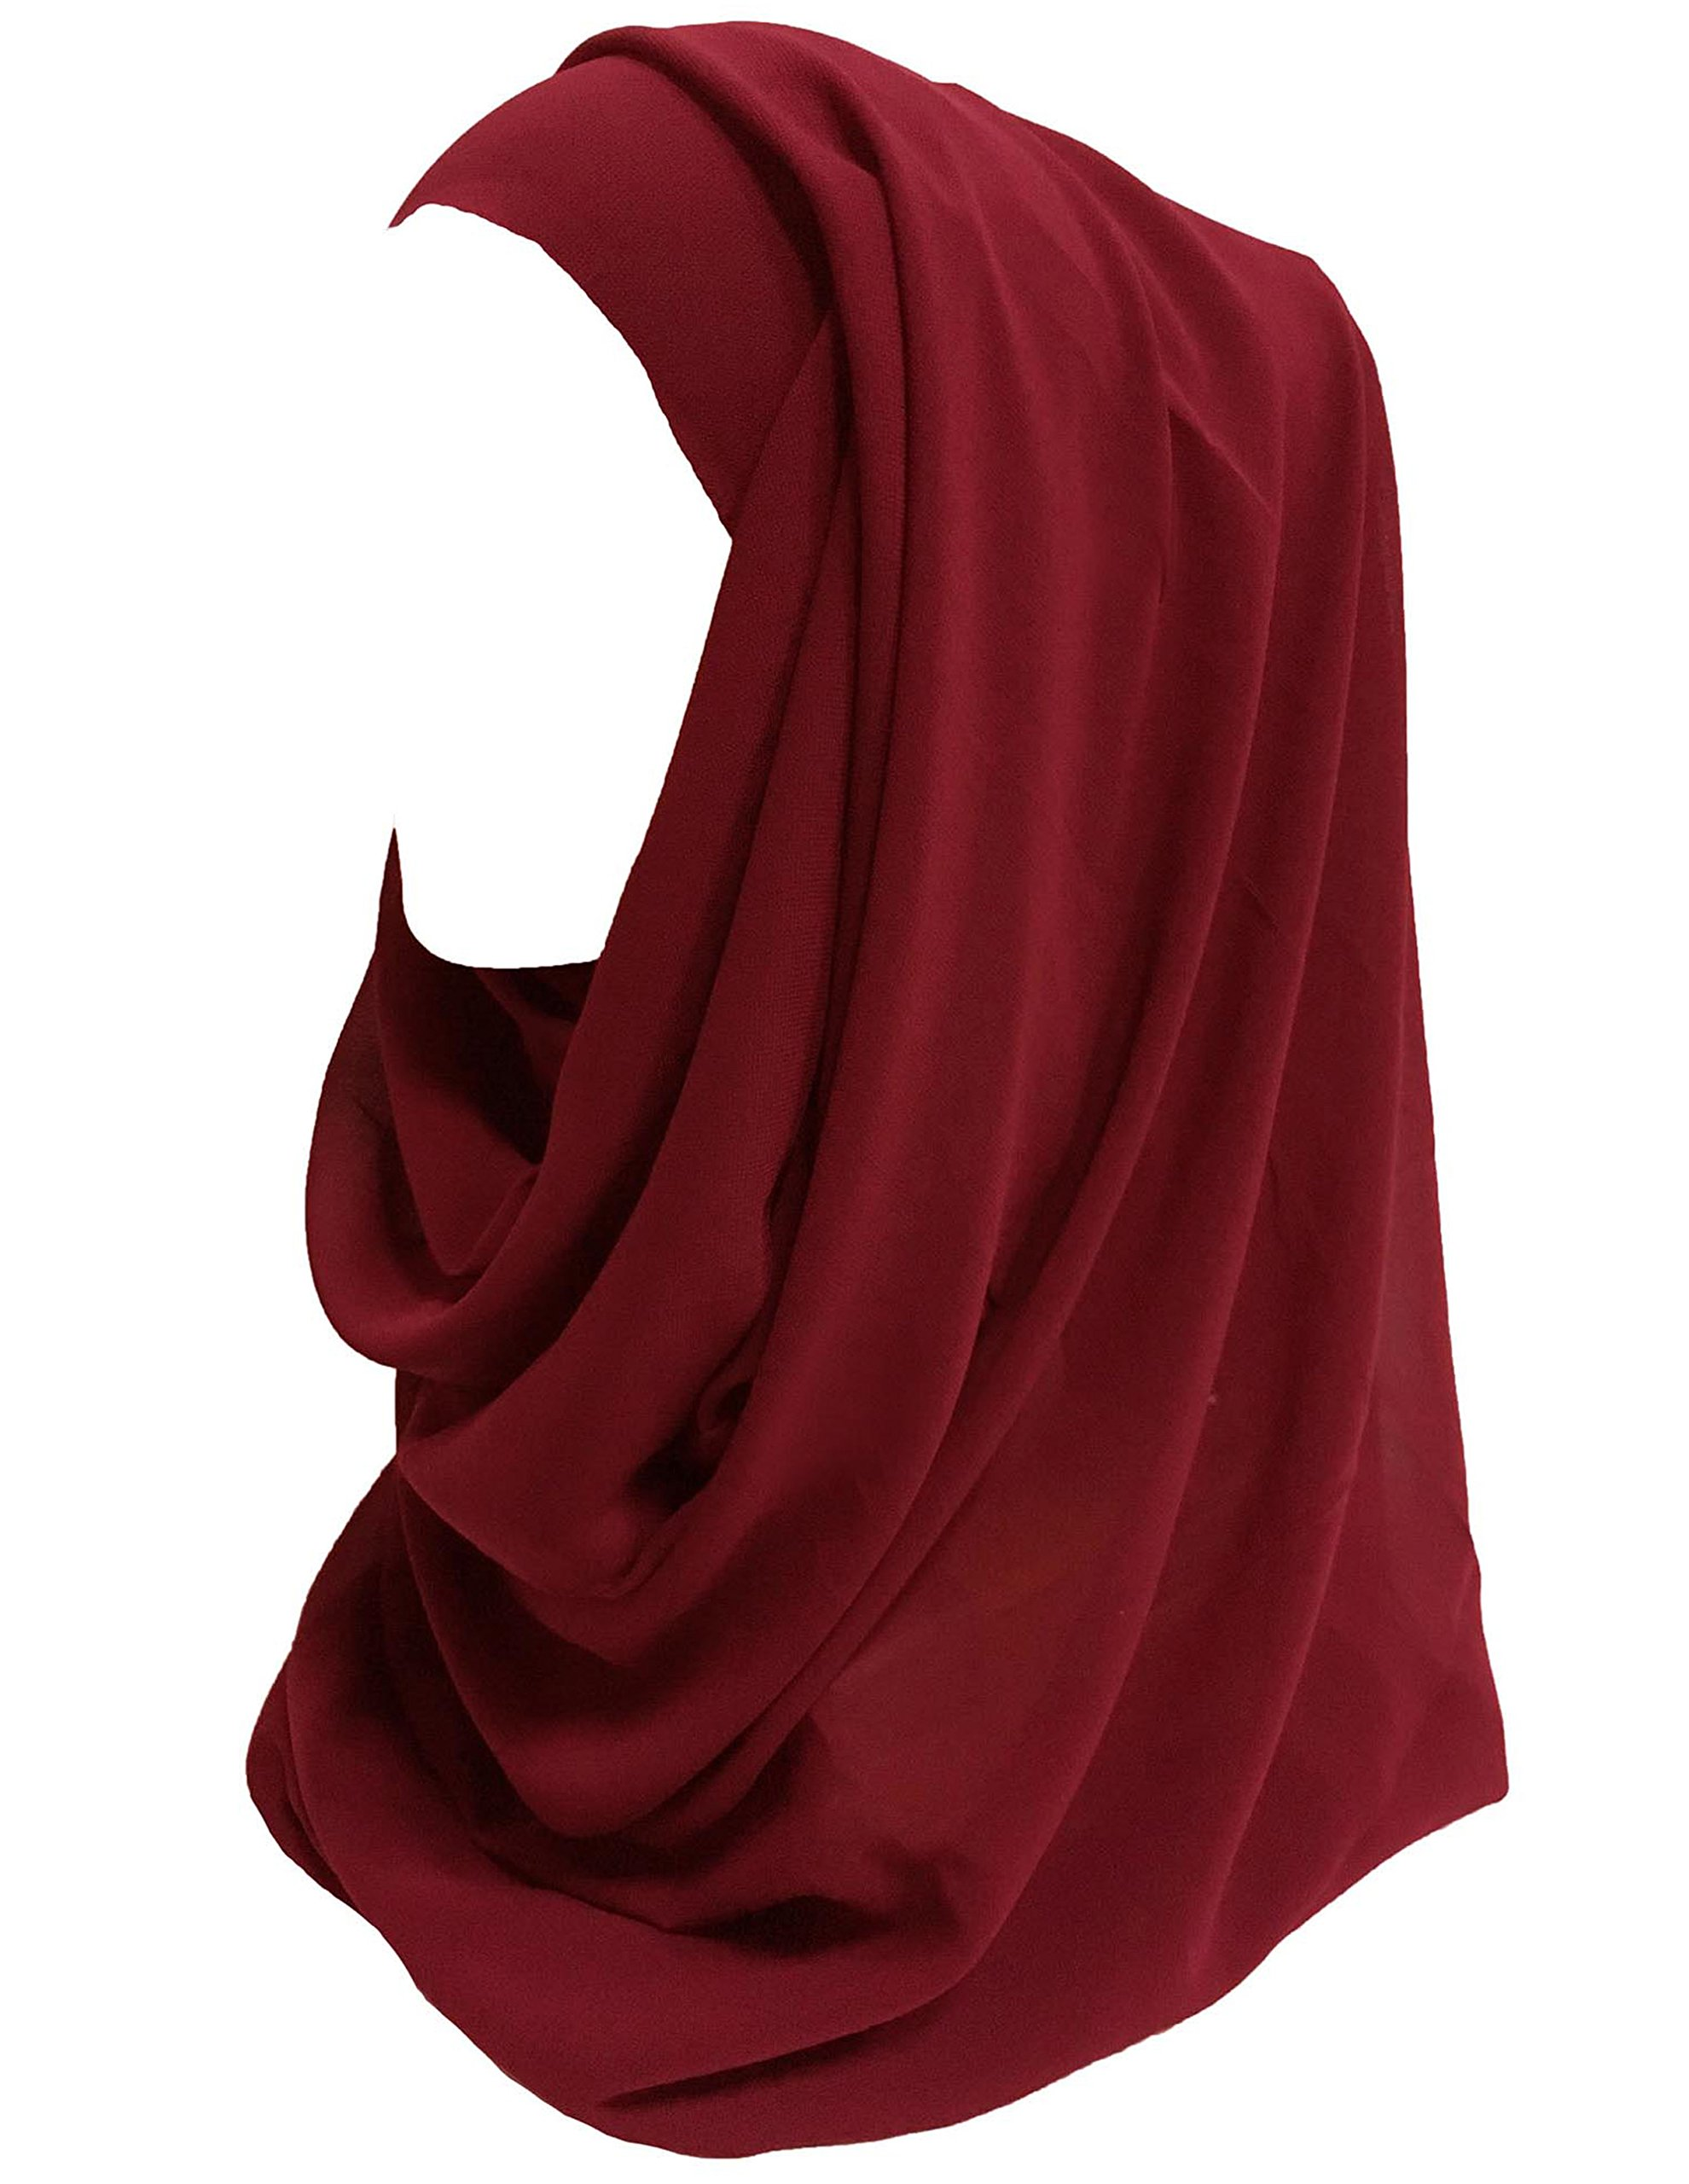 Lina & Lily Solid Color Thick Chiffon Muslim Hijab Long Scarf (Dark Red)